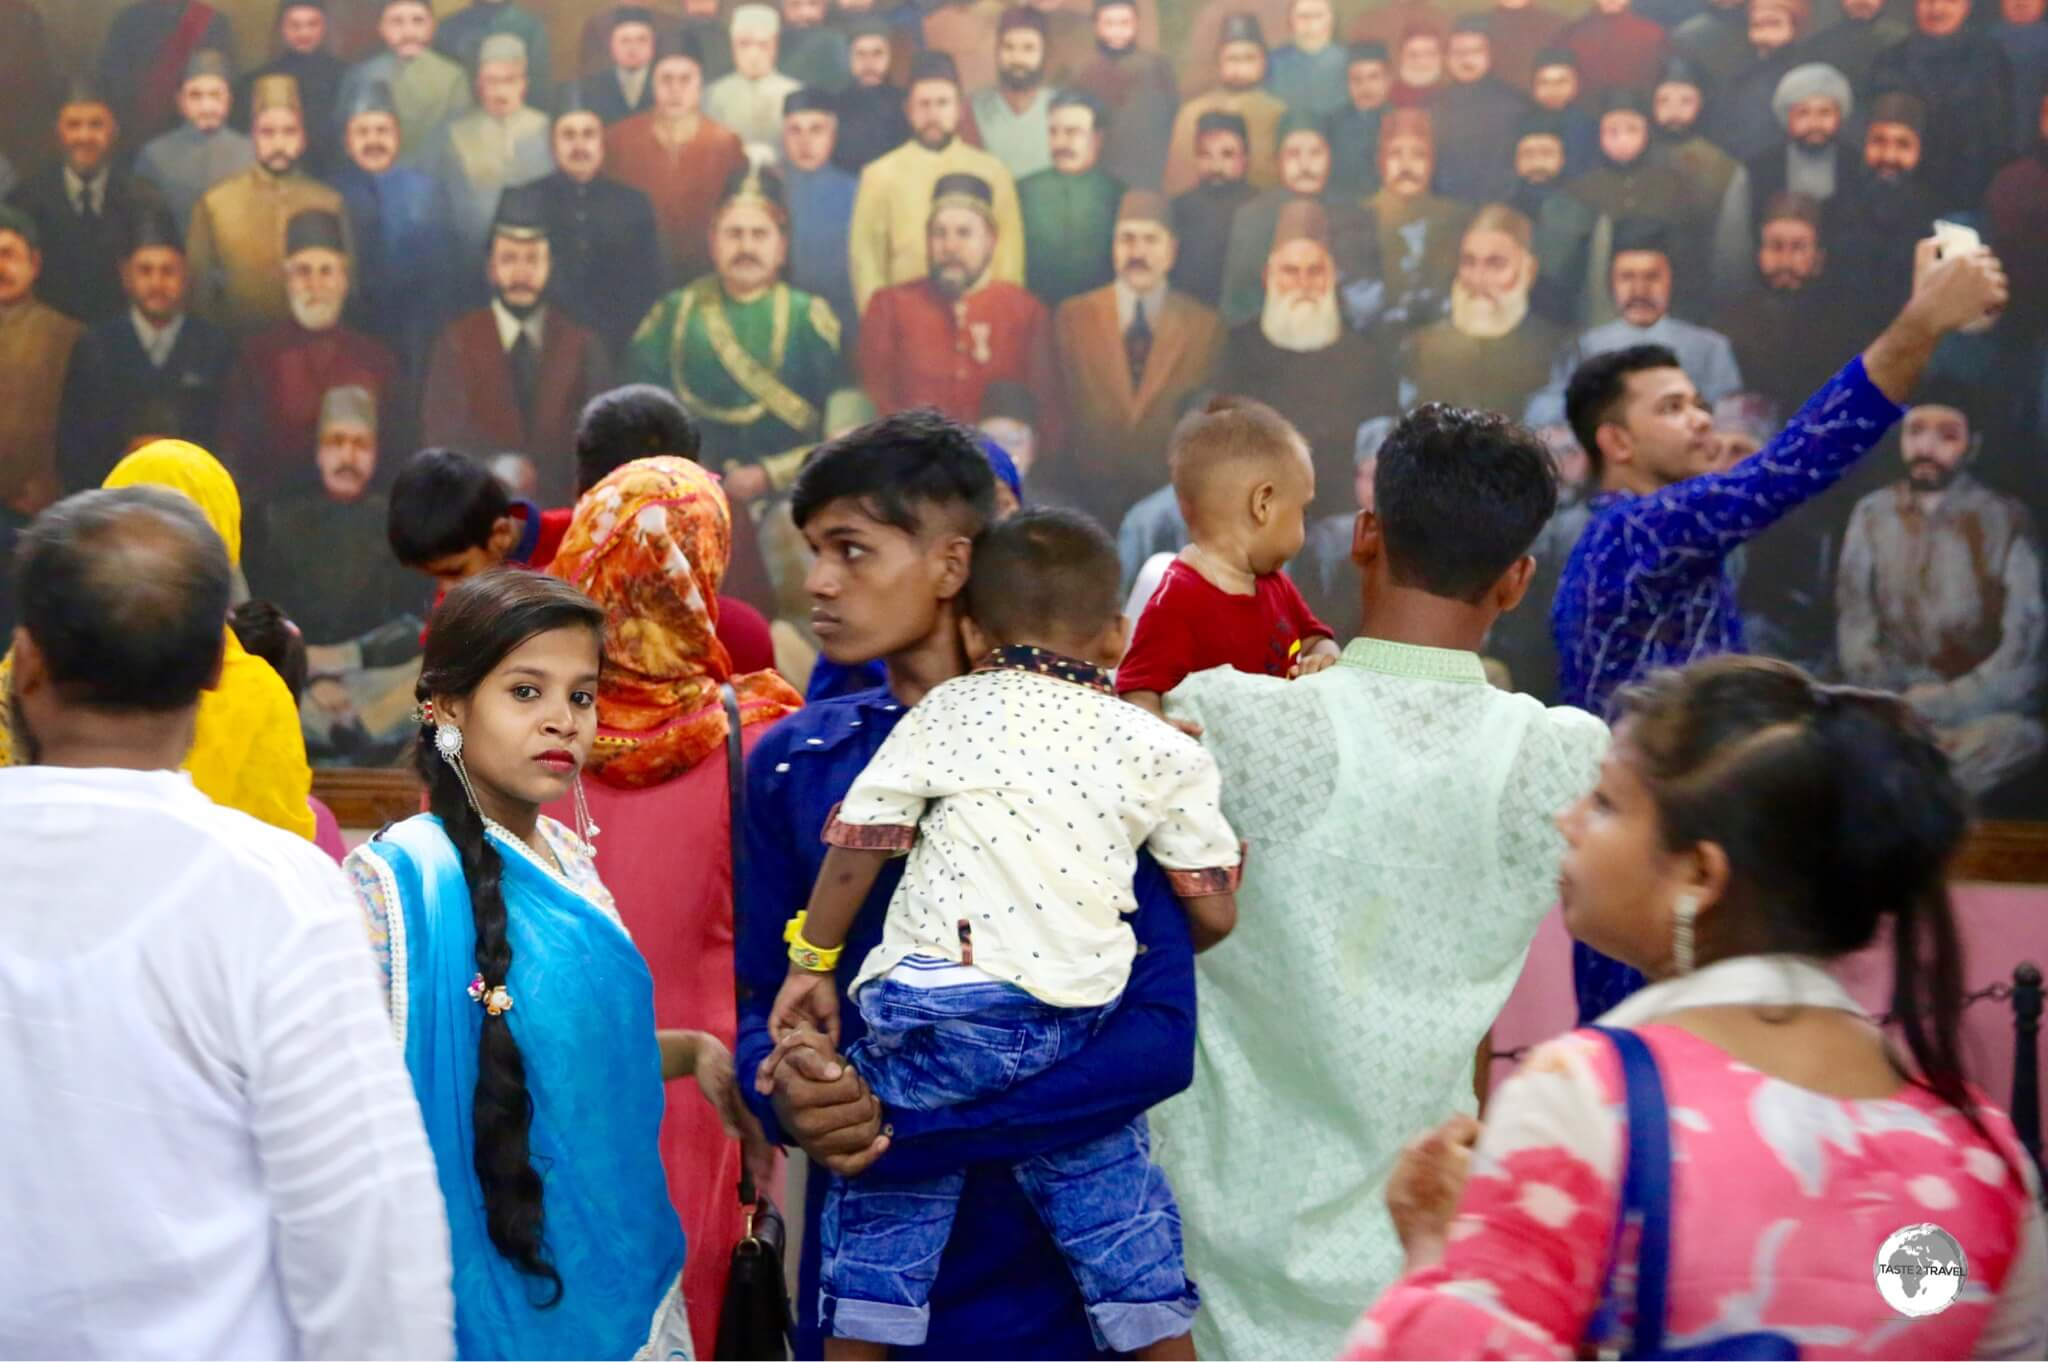 Bangladeshi visitor's observing a mural of Bangladeshi leaders inside the Pink Palace museum.